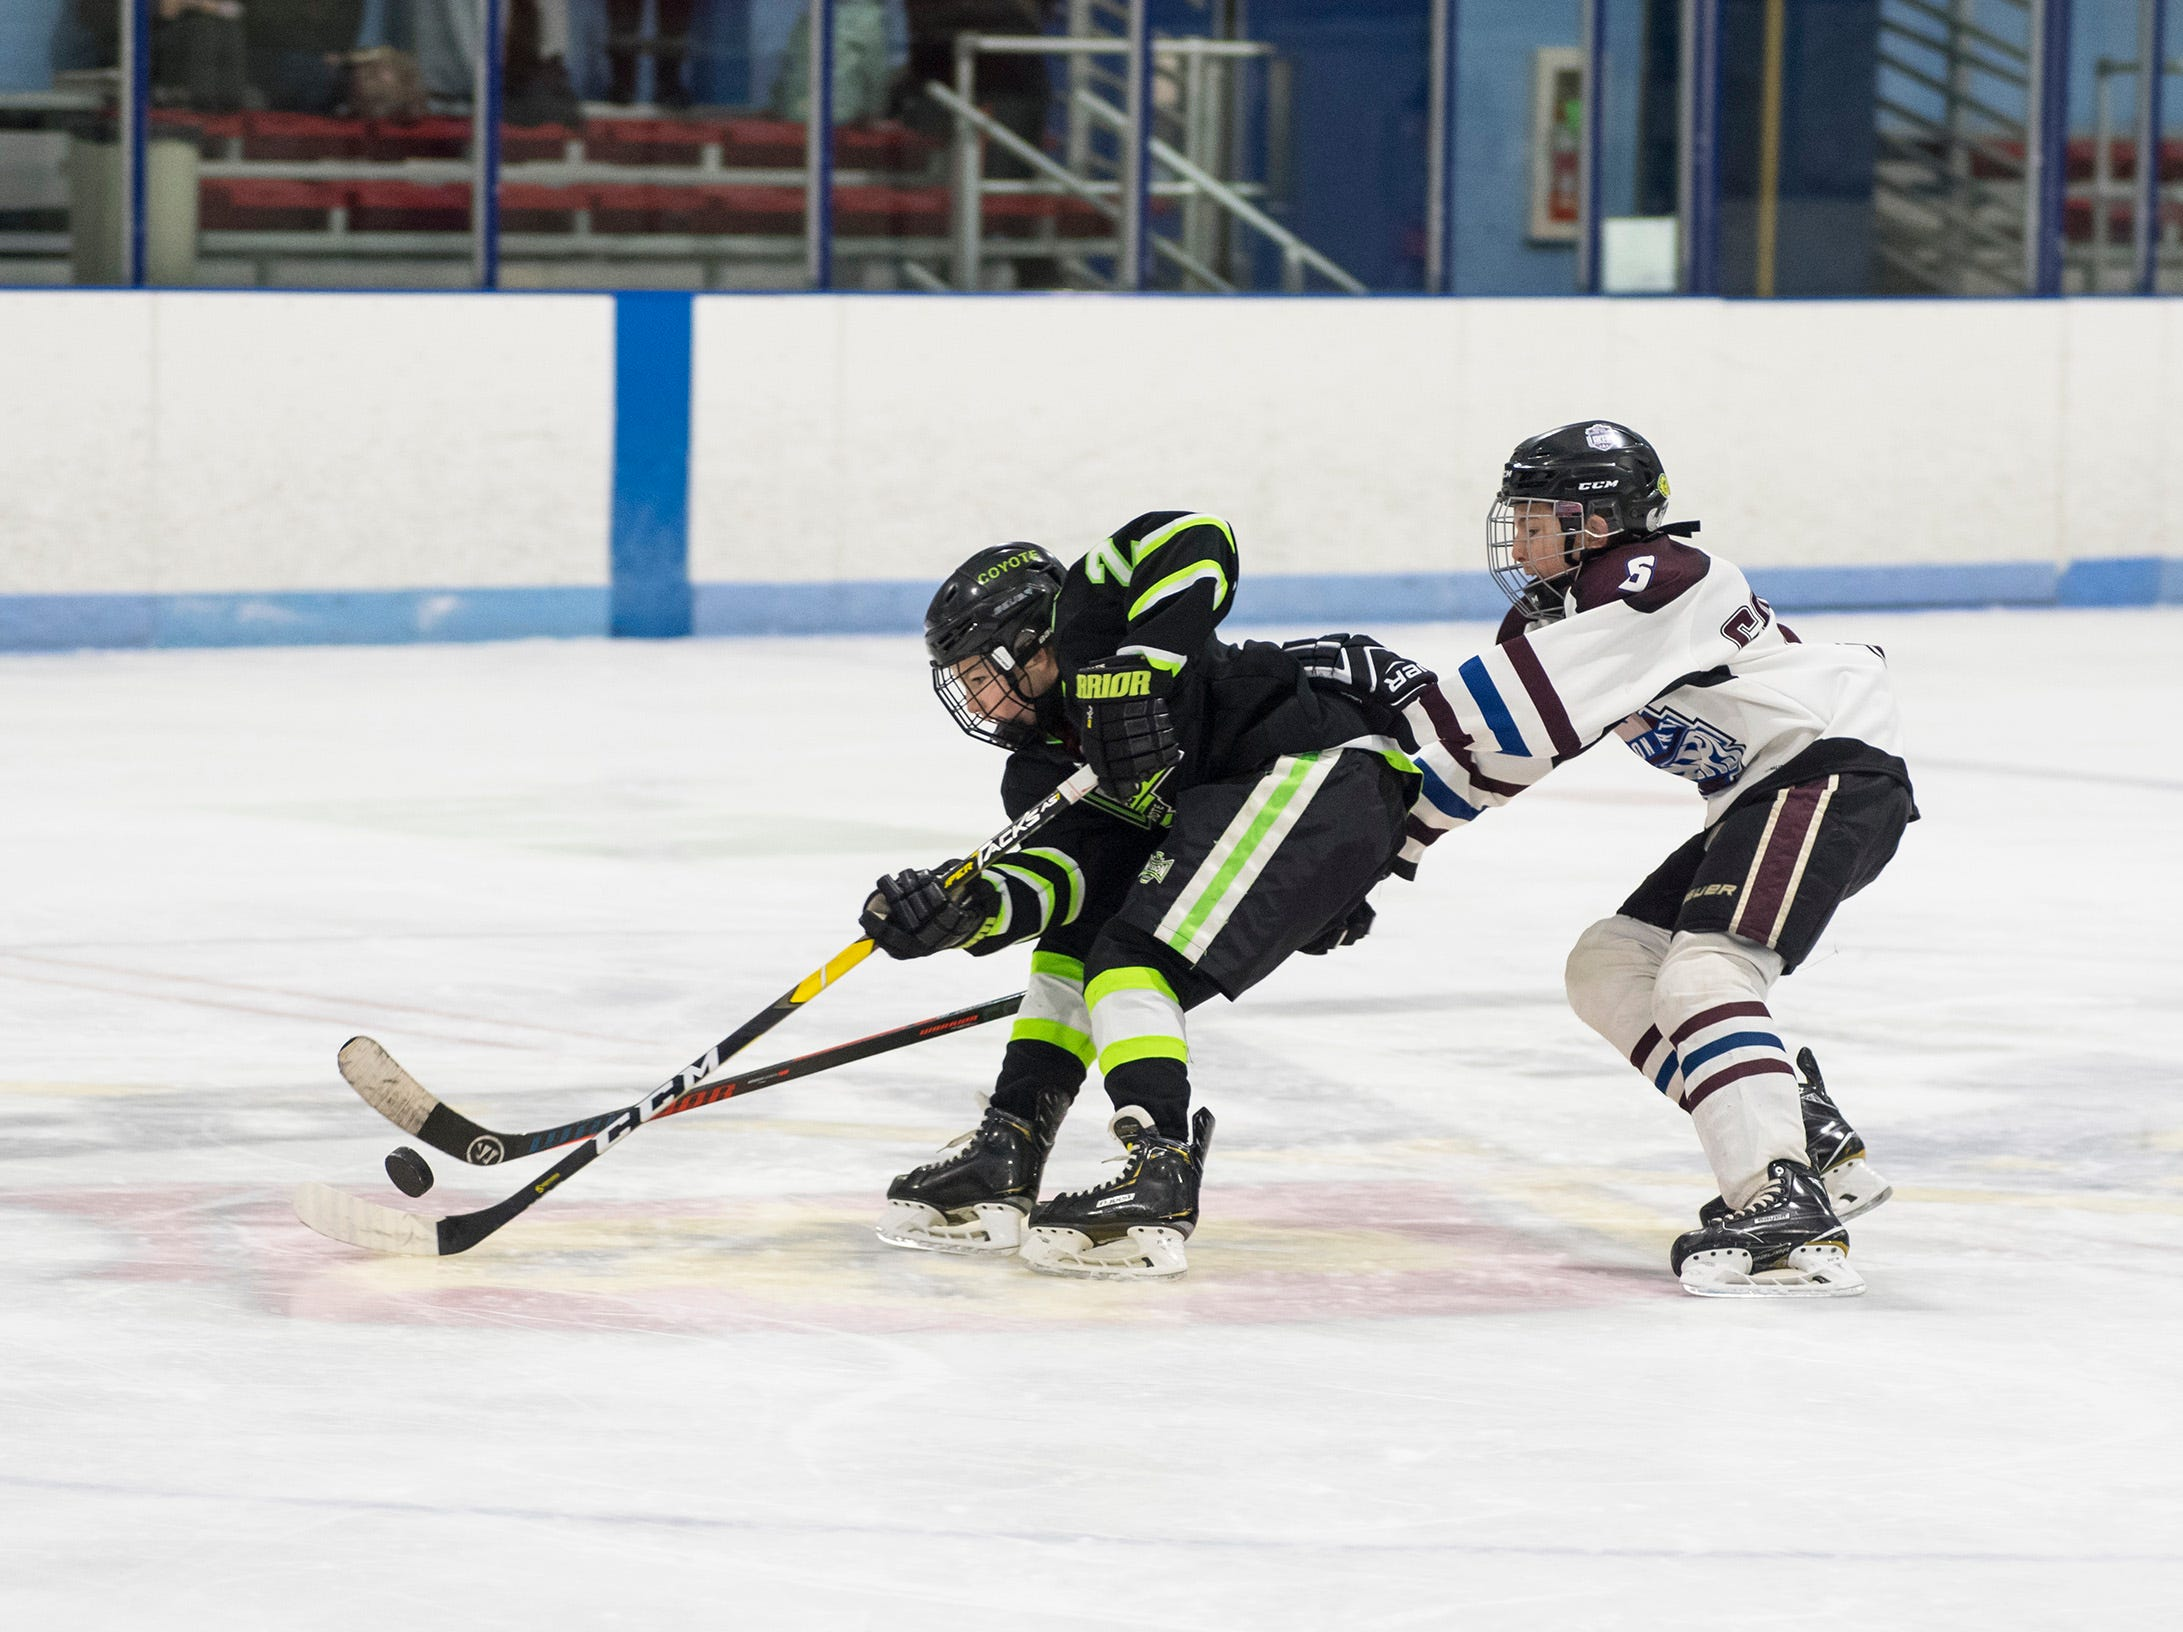 Huron Perth Lakers defenseman Luke Bogart (5) hits the puck away from Chicago Mission defenseman Michael Phelan during their Silver Stick Finals PAAA-B match Thursday, Jan. 3, 2019 at Glacier Pointe Ice Complex.